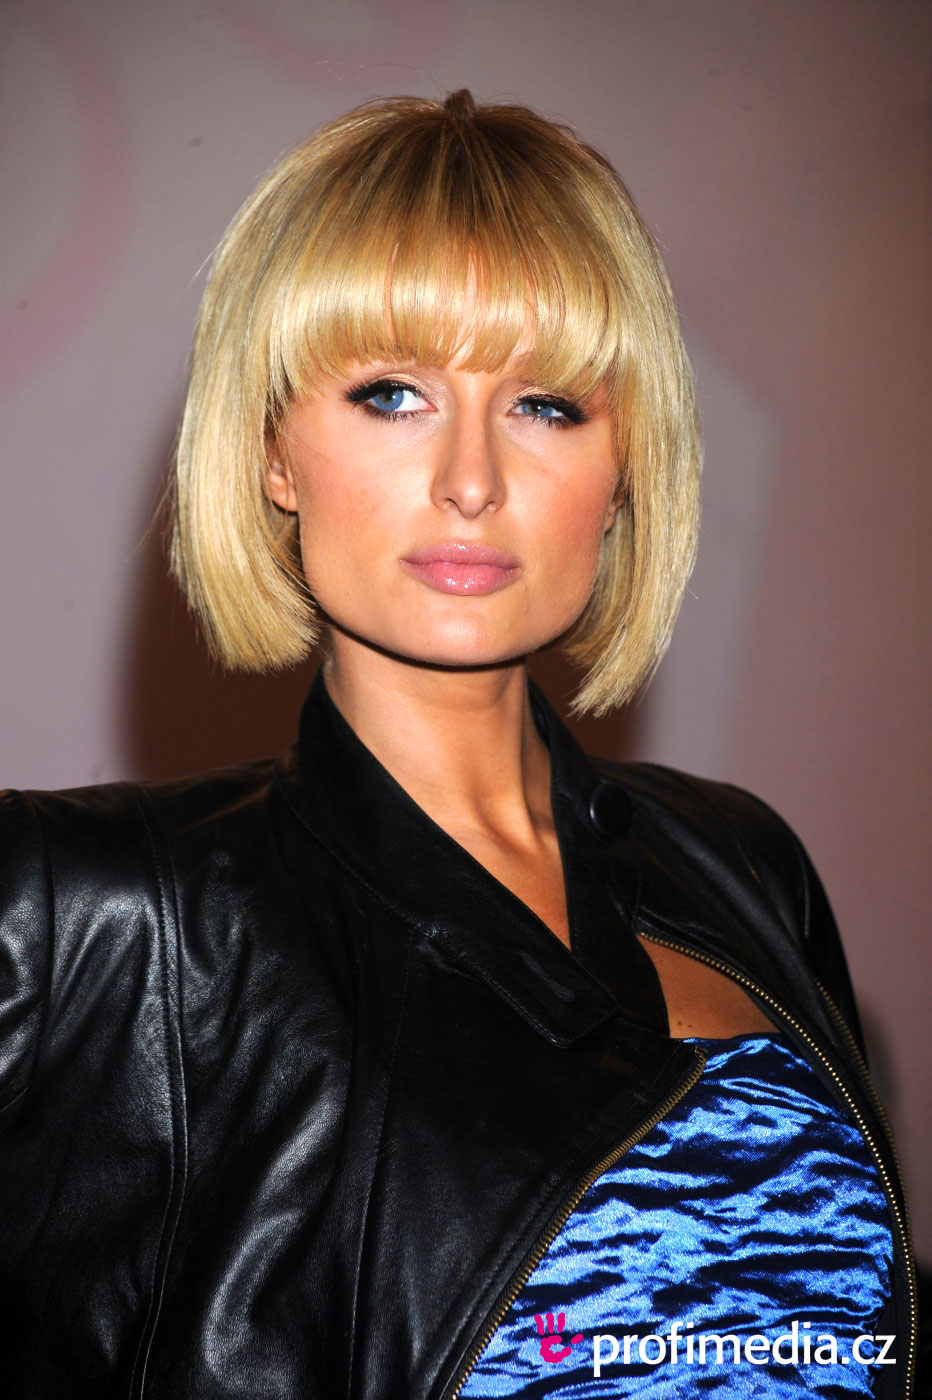 paris hilton frisur zum ausprobieren in efrisuren. Black Bedroom Furniture Sets. Home Design Ideas